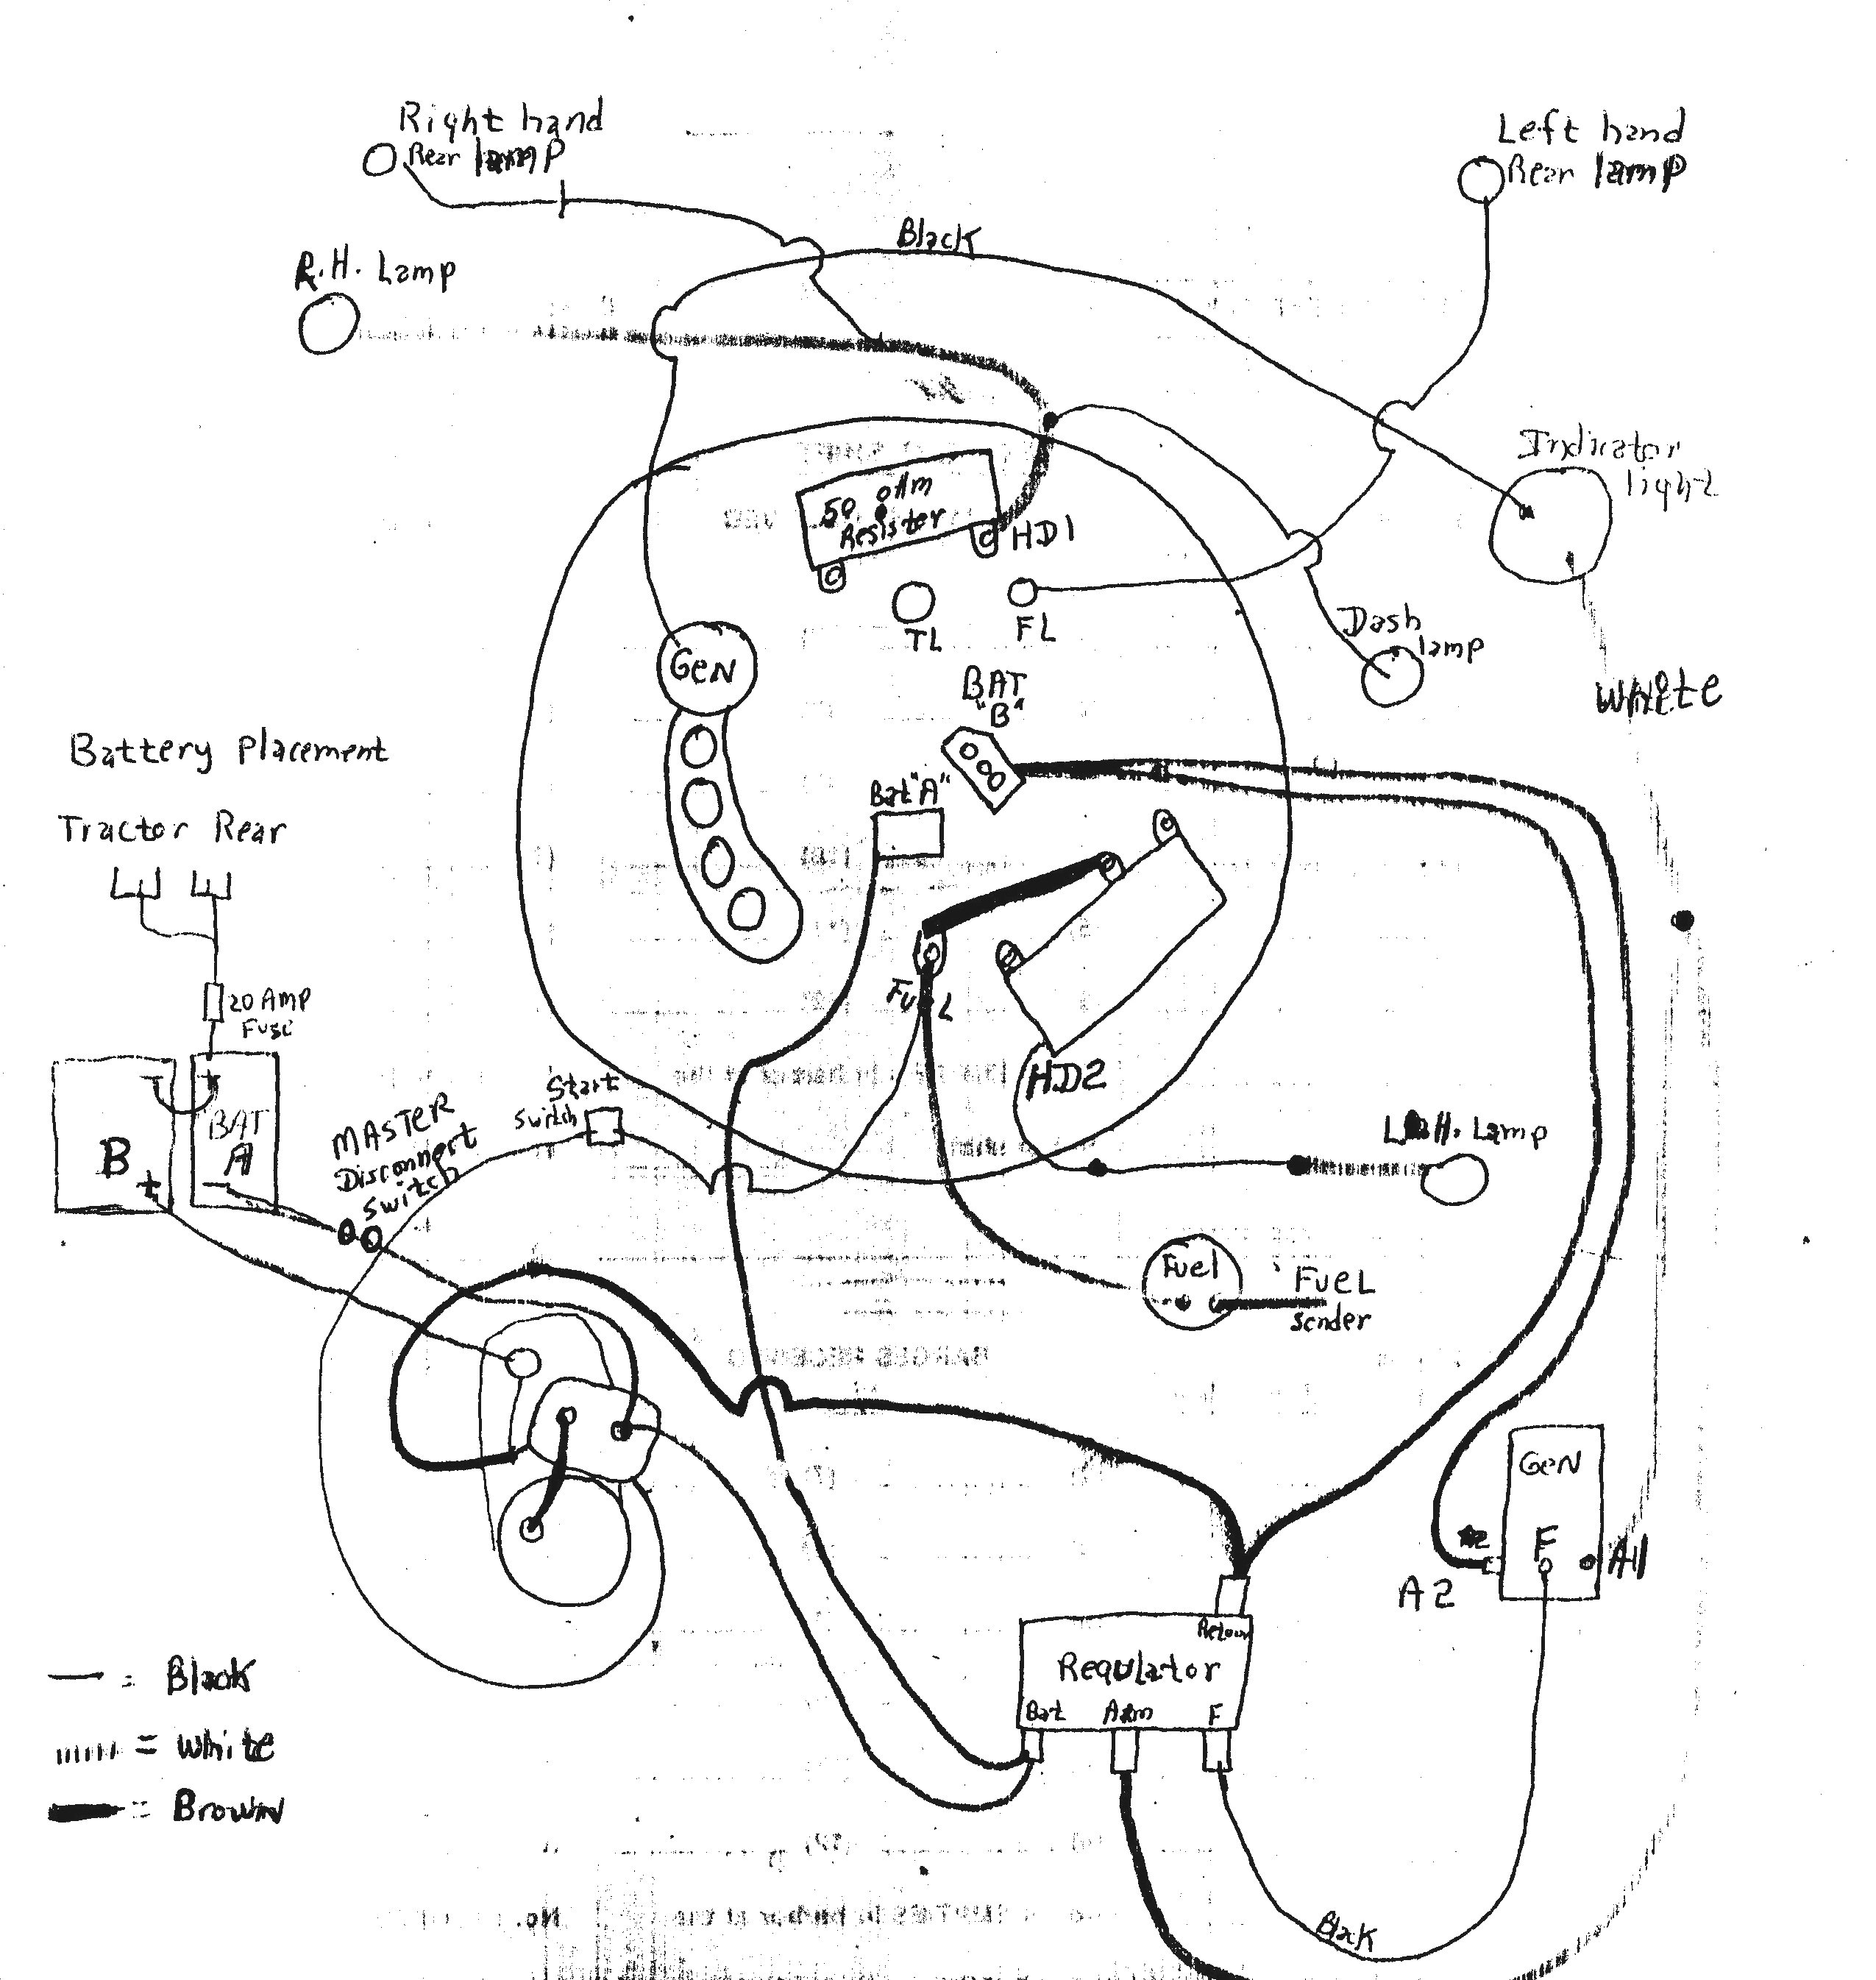 The John Deere 24 Volt Electrical System Explained John Deere C Backhoe Wiring Diagram on john deere 410b wiring diagram, john deere 450c wiring diagram, john deere 110 wiring diagram, john deere 302a wiring diagram, john deere 710b wiring diagram, john deere 300 wiring diagram, john deere 310sg wiring diagram, john deere 310d wiring diagram, john deere 310g wiring diagram, john deere 310j wiring diagram, john deere 310a wiring diagram, john deere 410 wiring diagram, john deere 210c wiring diagram, john deere 410c wiring diagram, john deere 300b wiring diagram, john deere 310e wiring diagram, john deere 310se wiring diagram, john deere 420c wiring diagram, john deere 510d wiring diagram, john deere 410g wiring diagram,